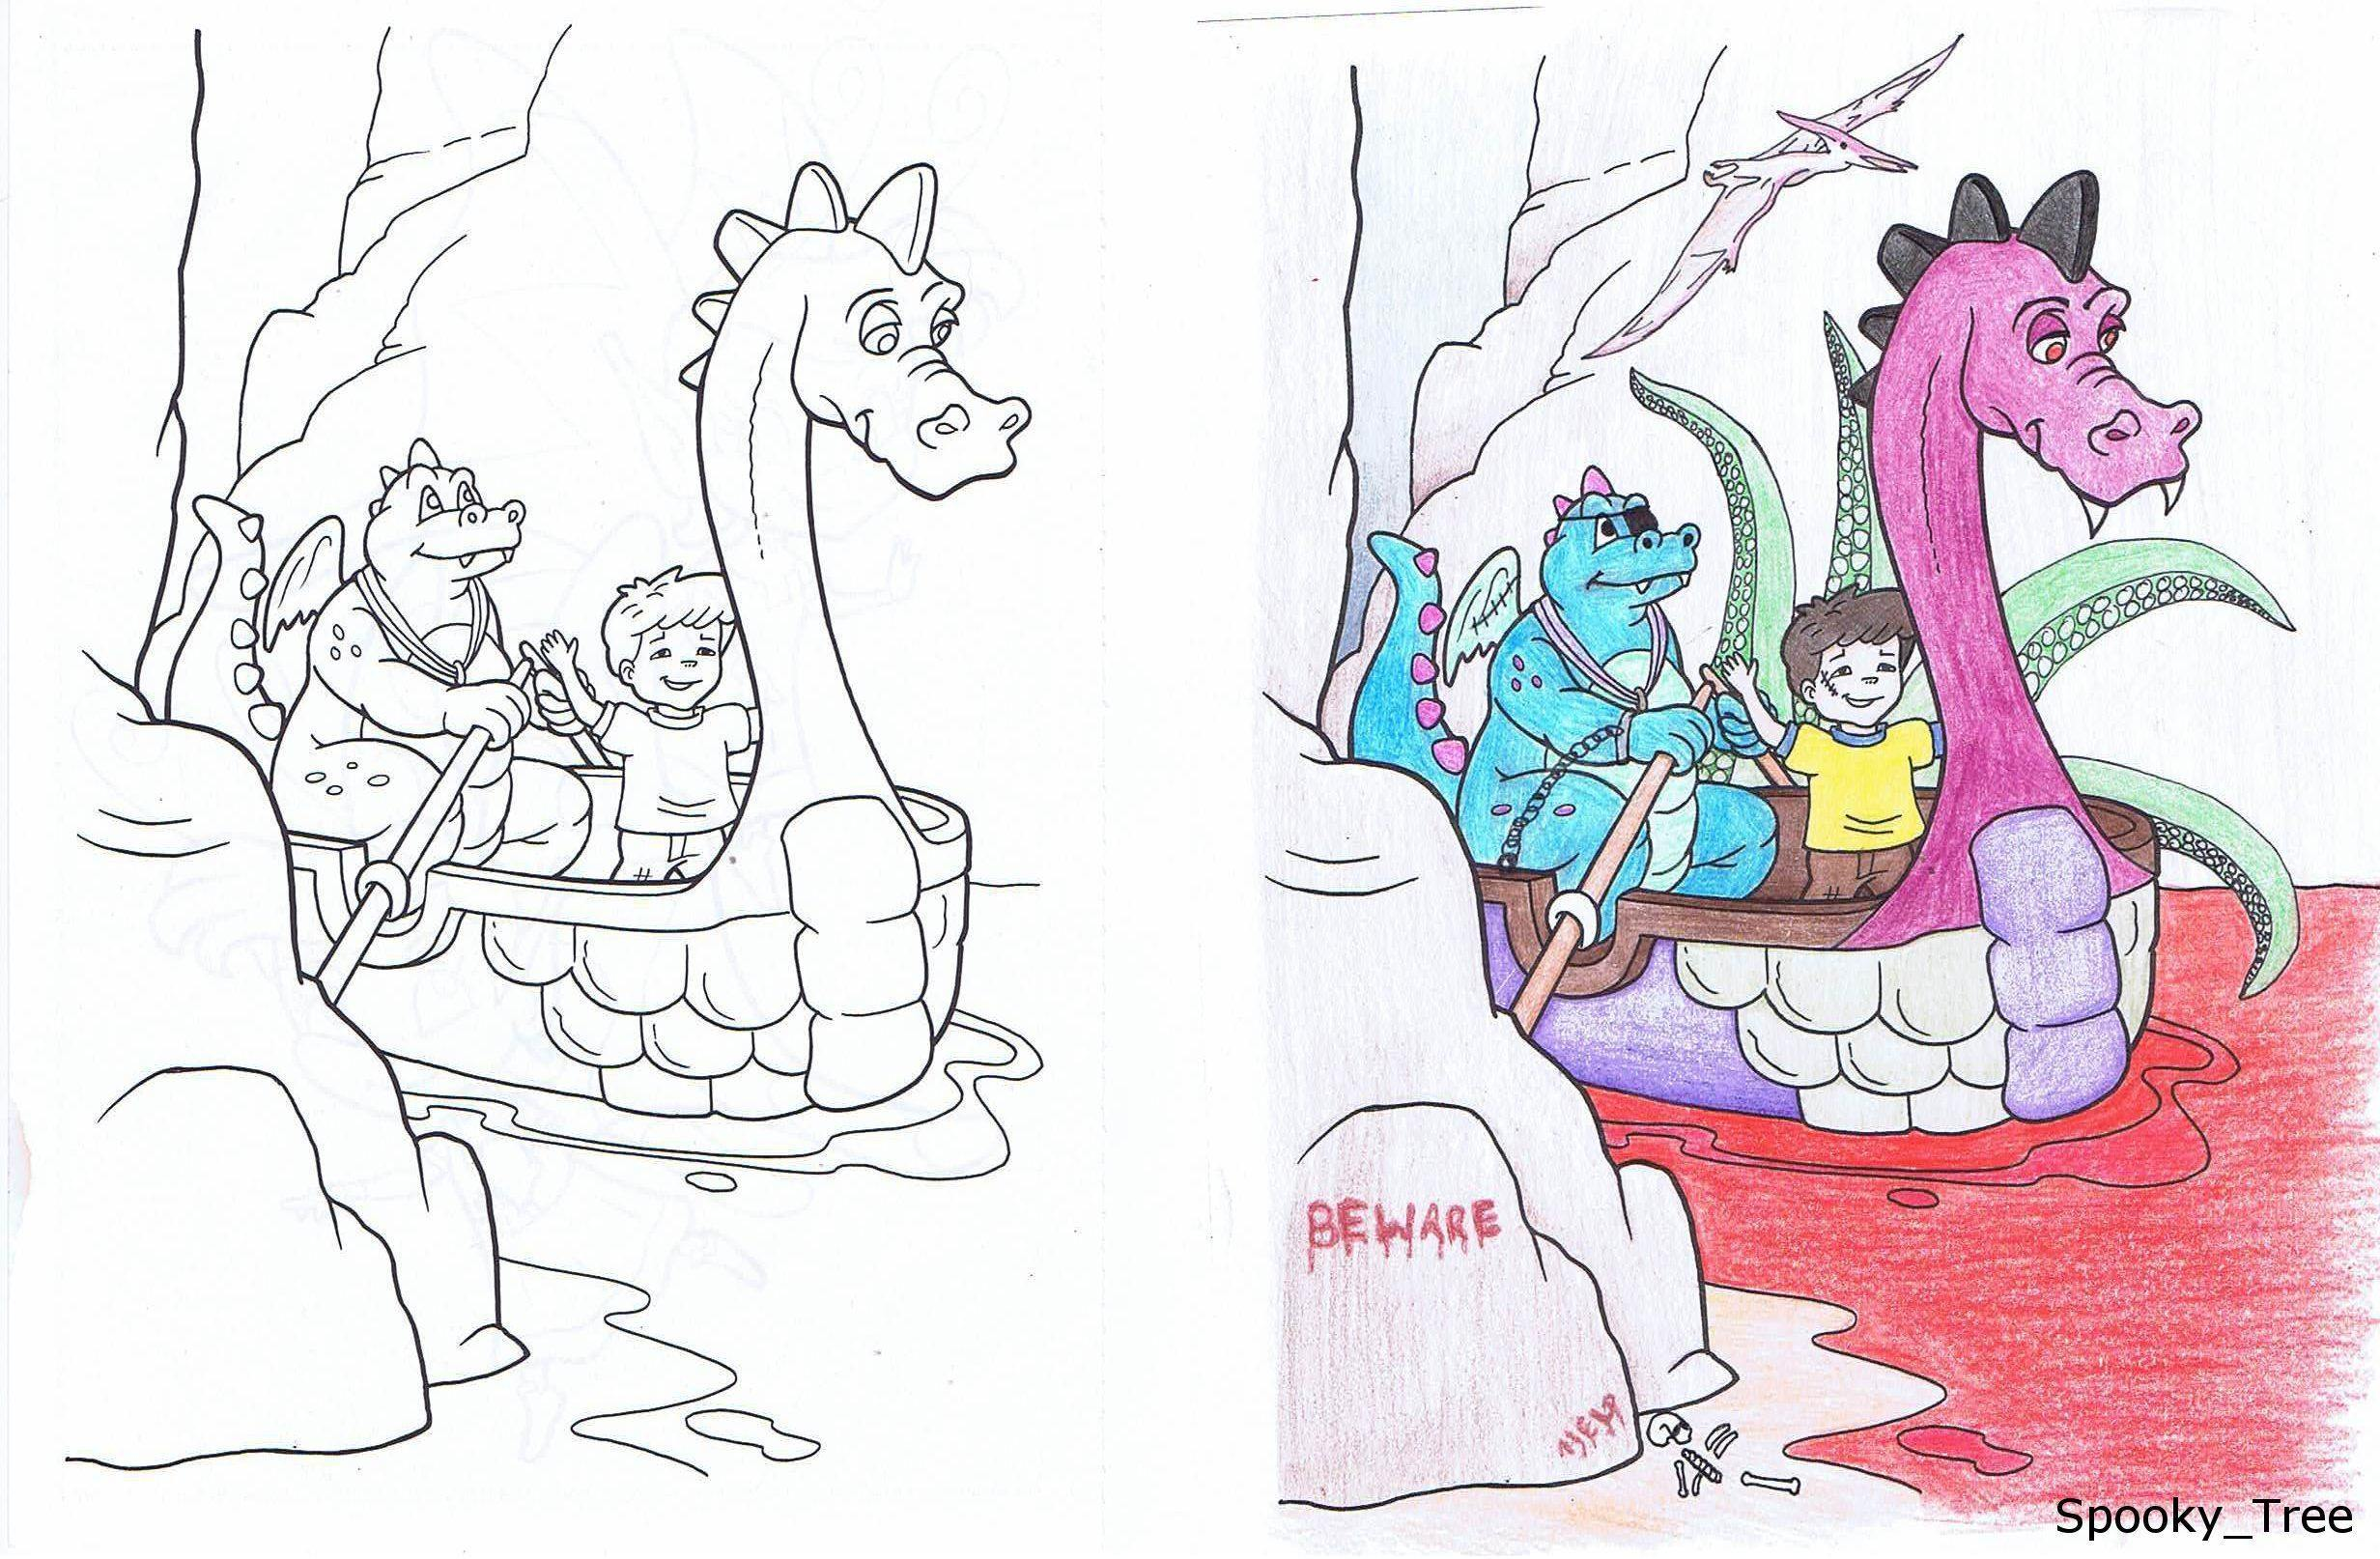 37 Corrupted Coloring Books That Are Seriously Twisted